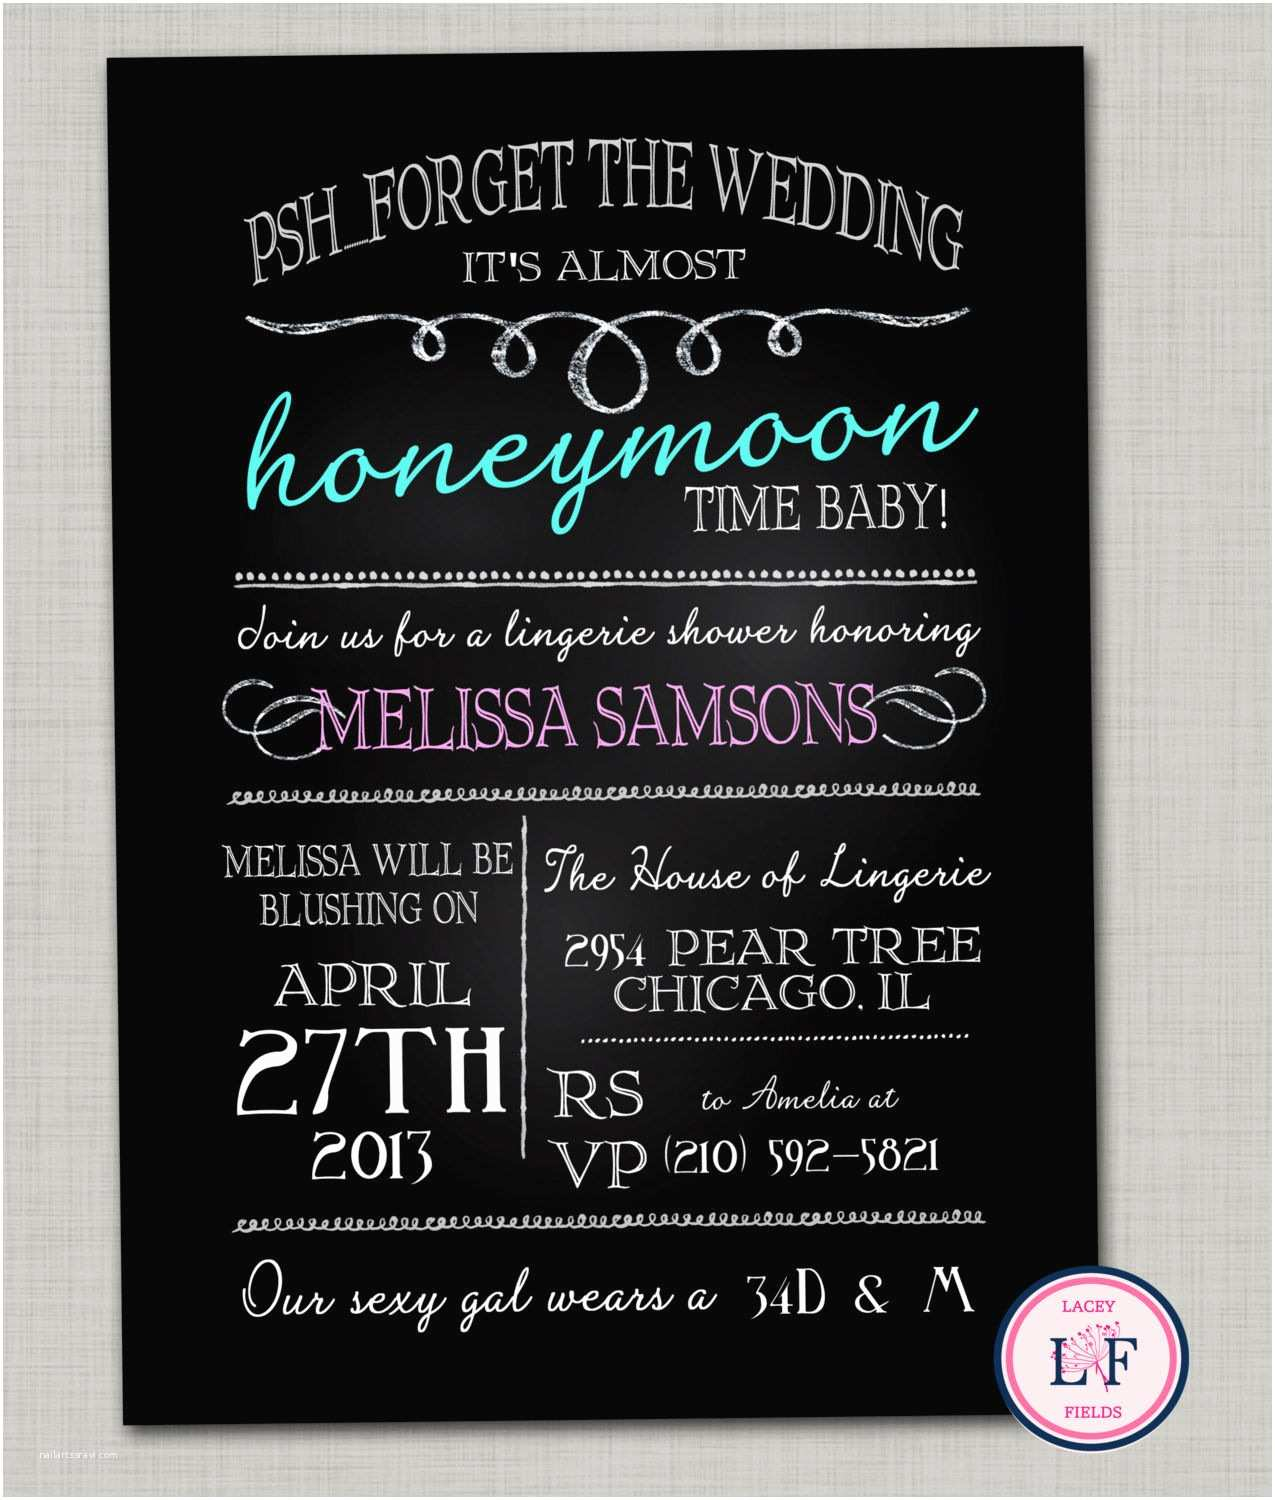 Wedding Reception Invitations Funny Wedding Reception Invitations